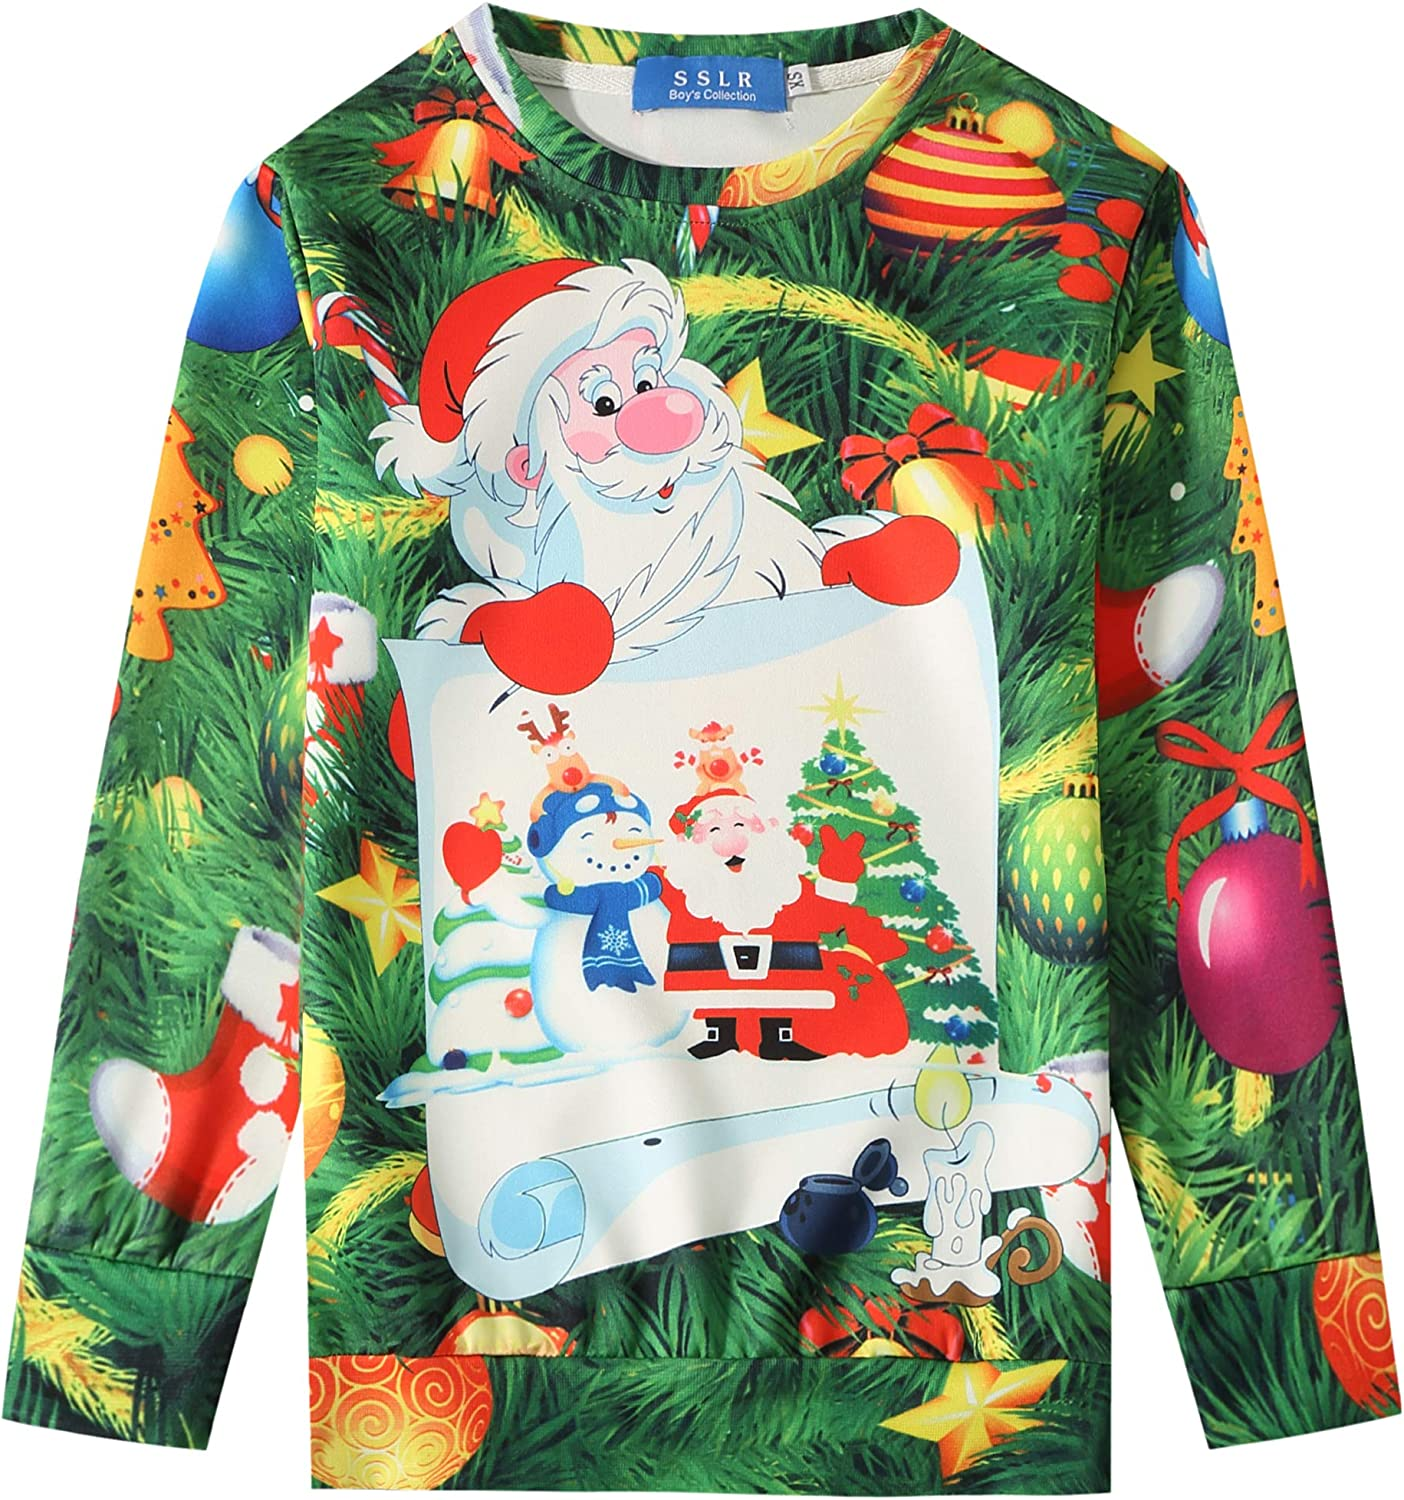 Mens Funny Santa Claus Cotton Crewneck Sweater Ugly Christmas Long Sleeve Knit Sweatshirt